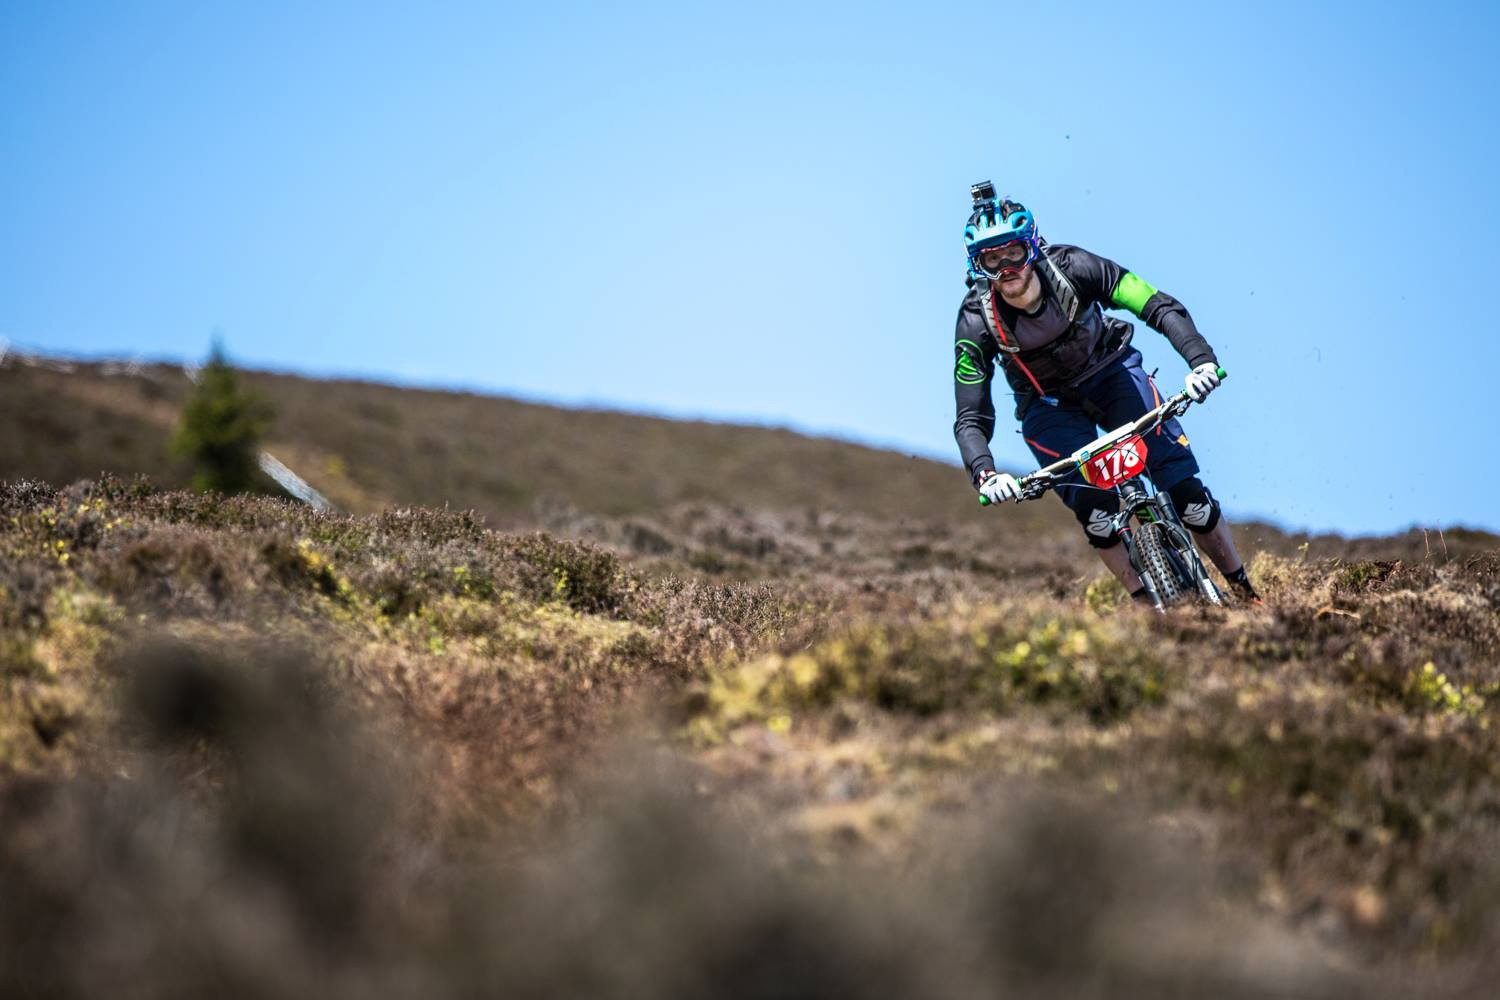 Fitness in Focus: What are the physicial demands of Enduro racing?